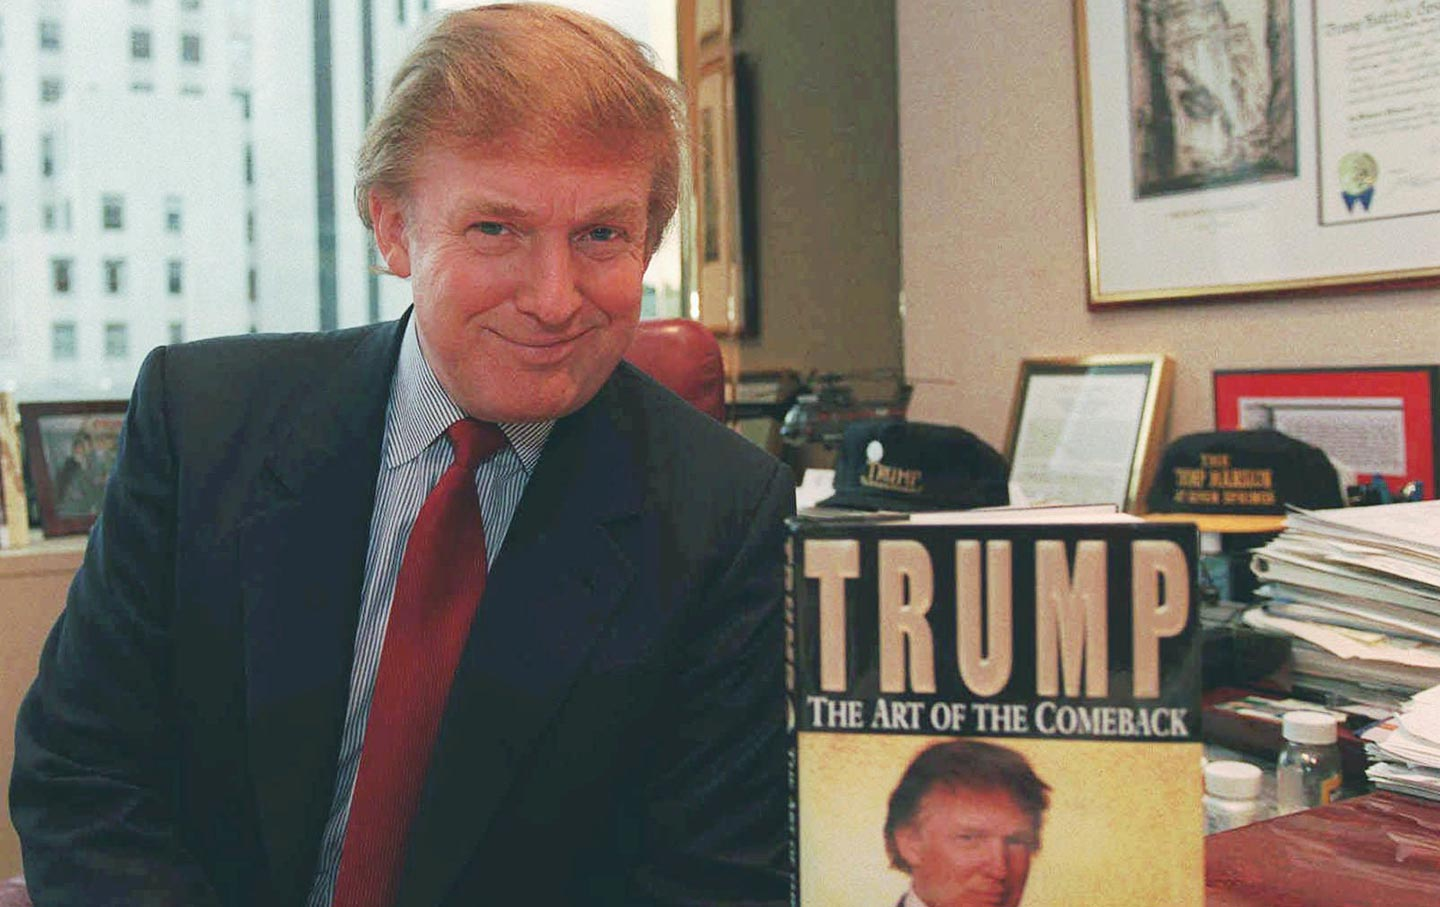 Donald Trump's Art of the Comeback